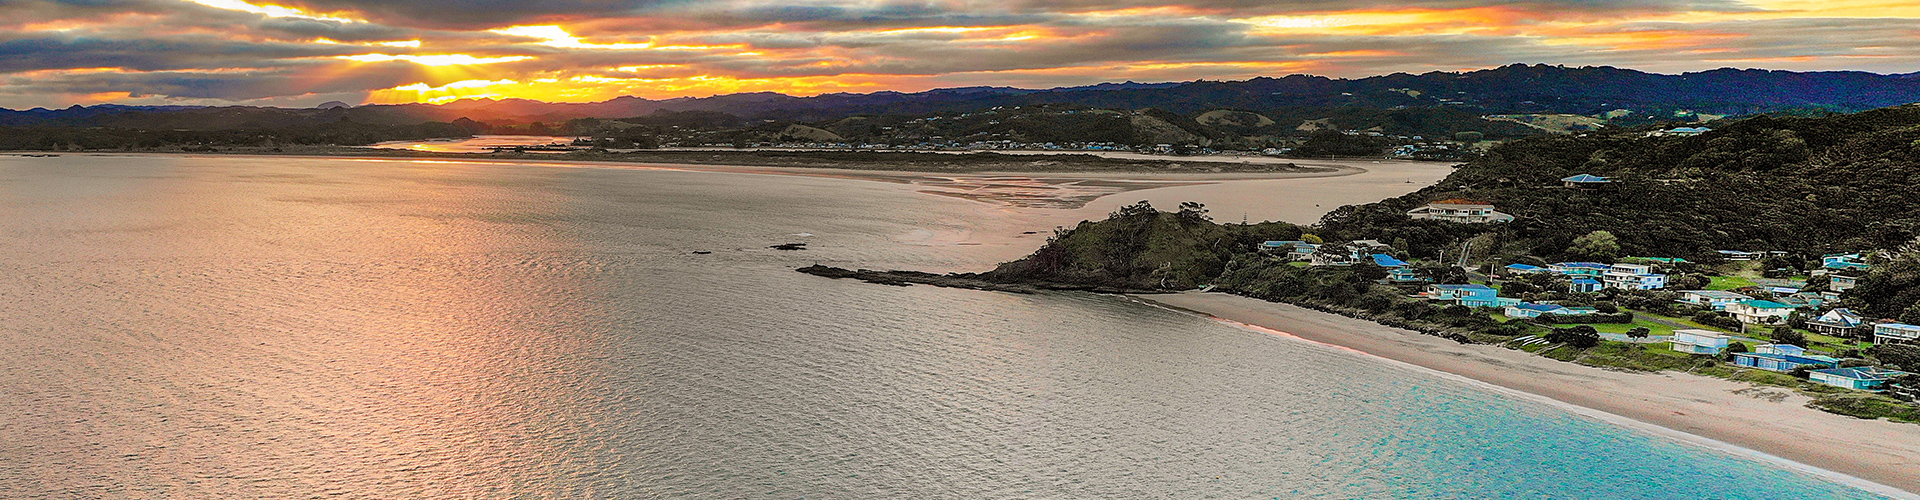 Whangaumu Bay - sometimes known as Wellington's Bay - is a 5 minute drive from Tutukaka.